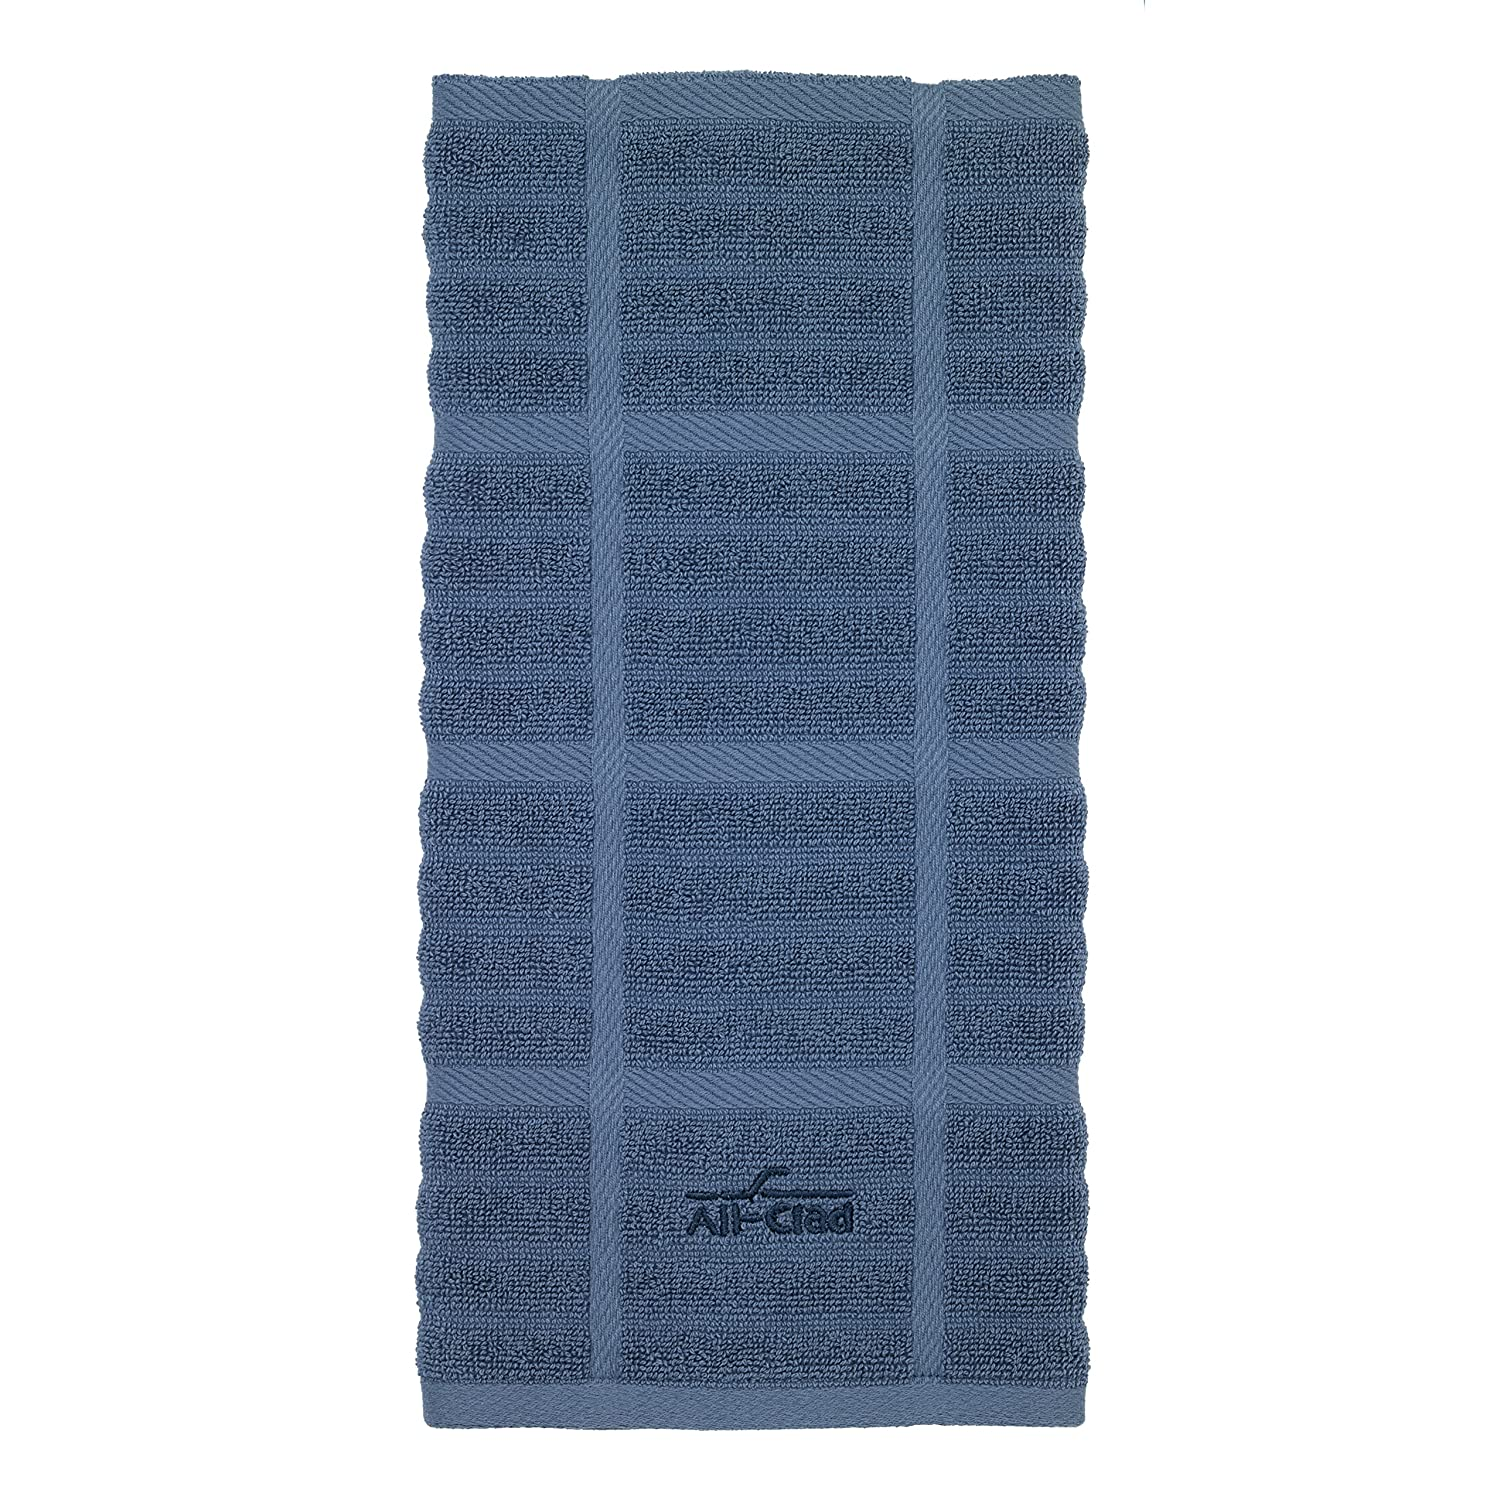 All-Clad Textiles 100-Percent Combed Terry Loop Cotton Kitchen Towel, Oversized, Highly Absorbent and Anti-Microbial, 17-inch by 30-inch, Solid, Cornflower